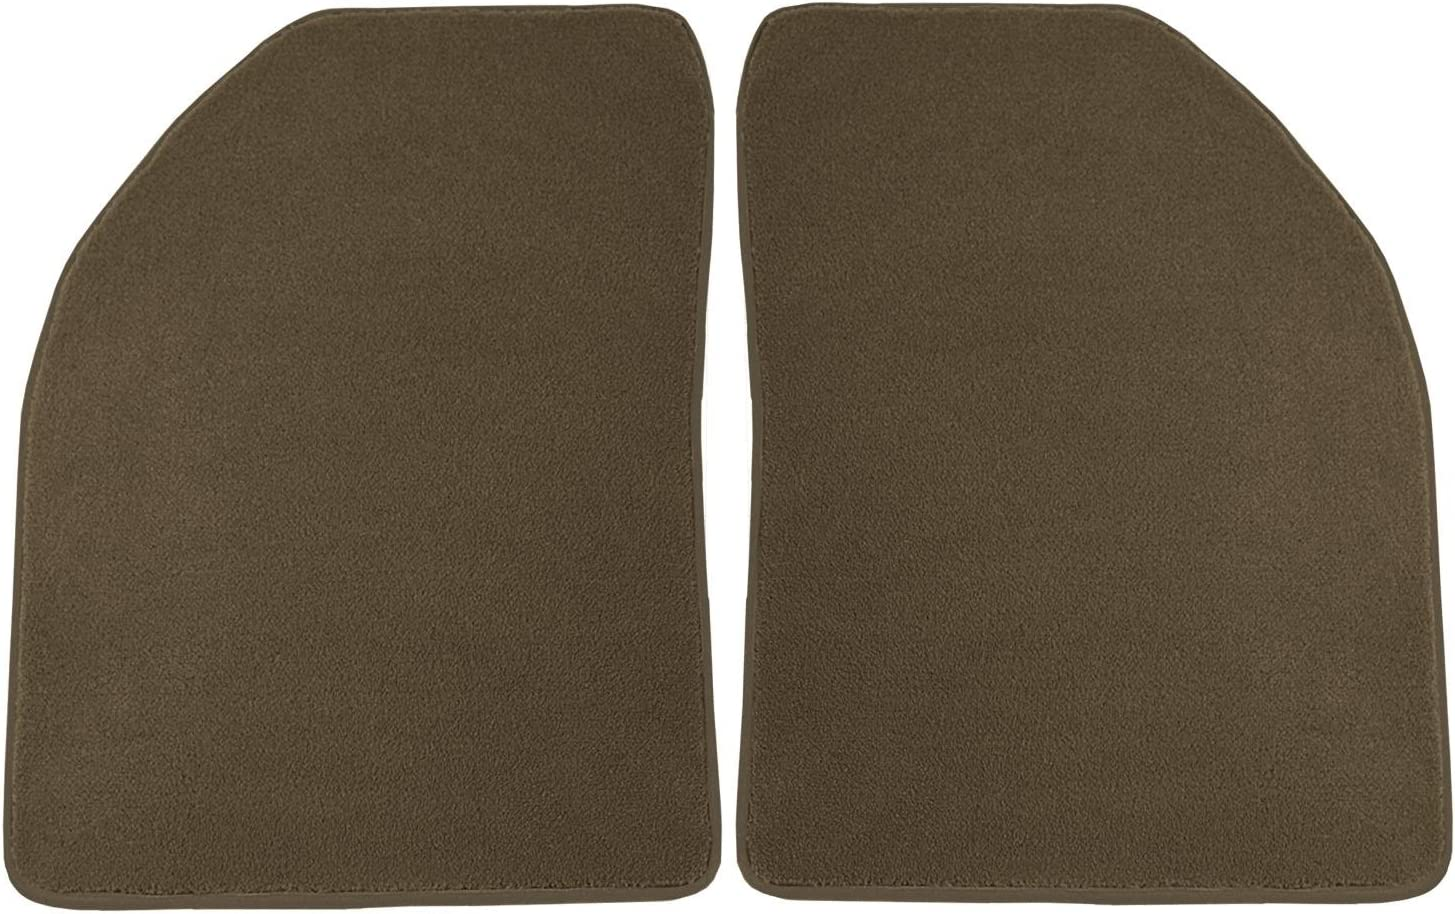 Coverking Front and Rear Floor Mats for Select Subaru Models 70 Oz Carpet Oak